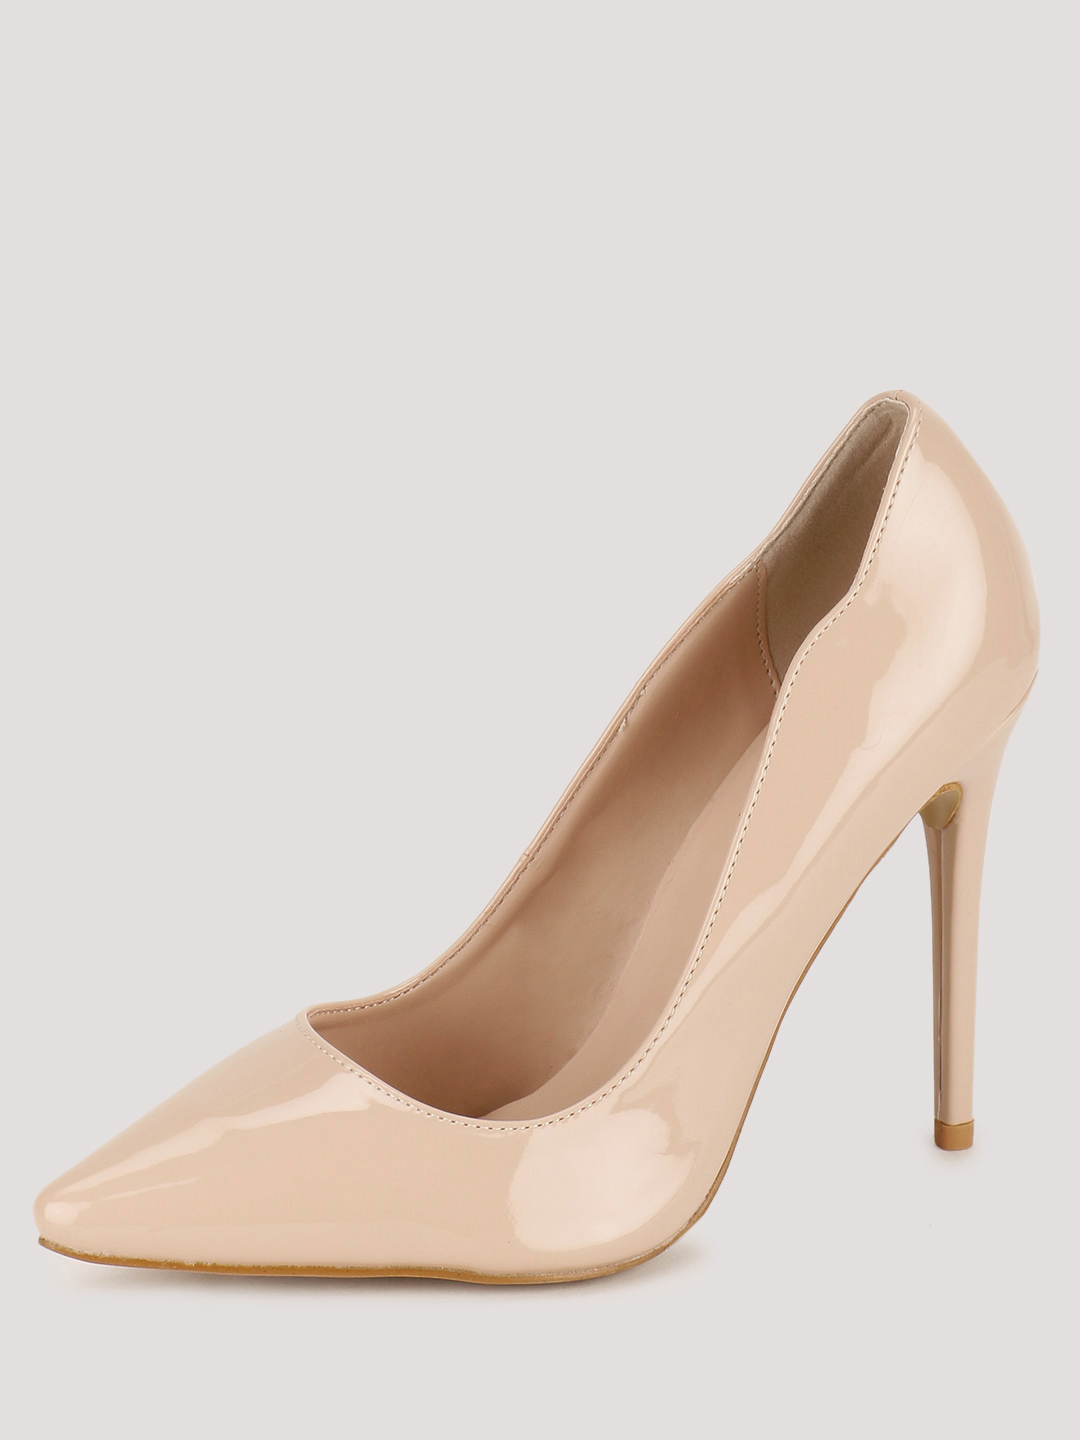 Intoto Nude Patent Pumps 1